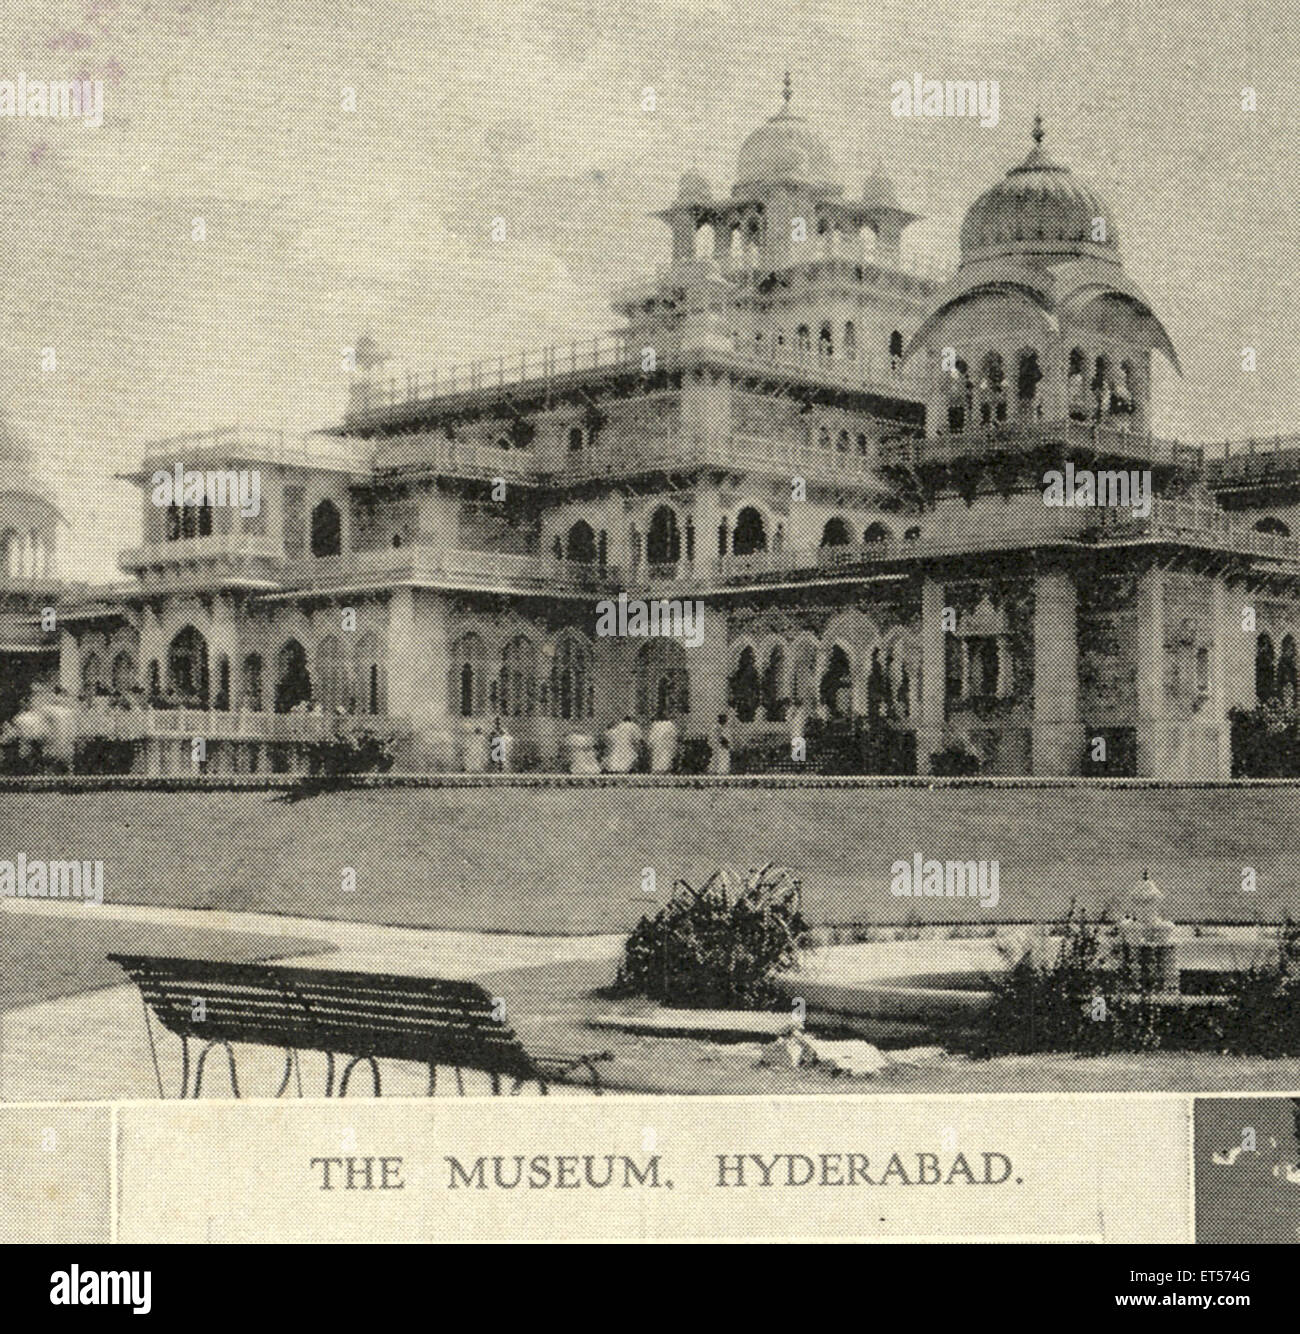 The museum of Hyderabad ; Andhra Pradesh ; India 10th February 1906 - Stock Image